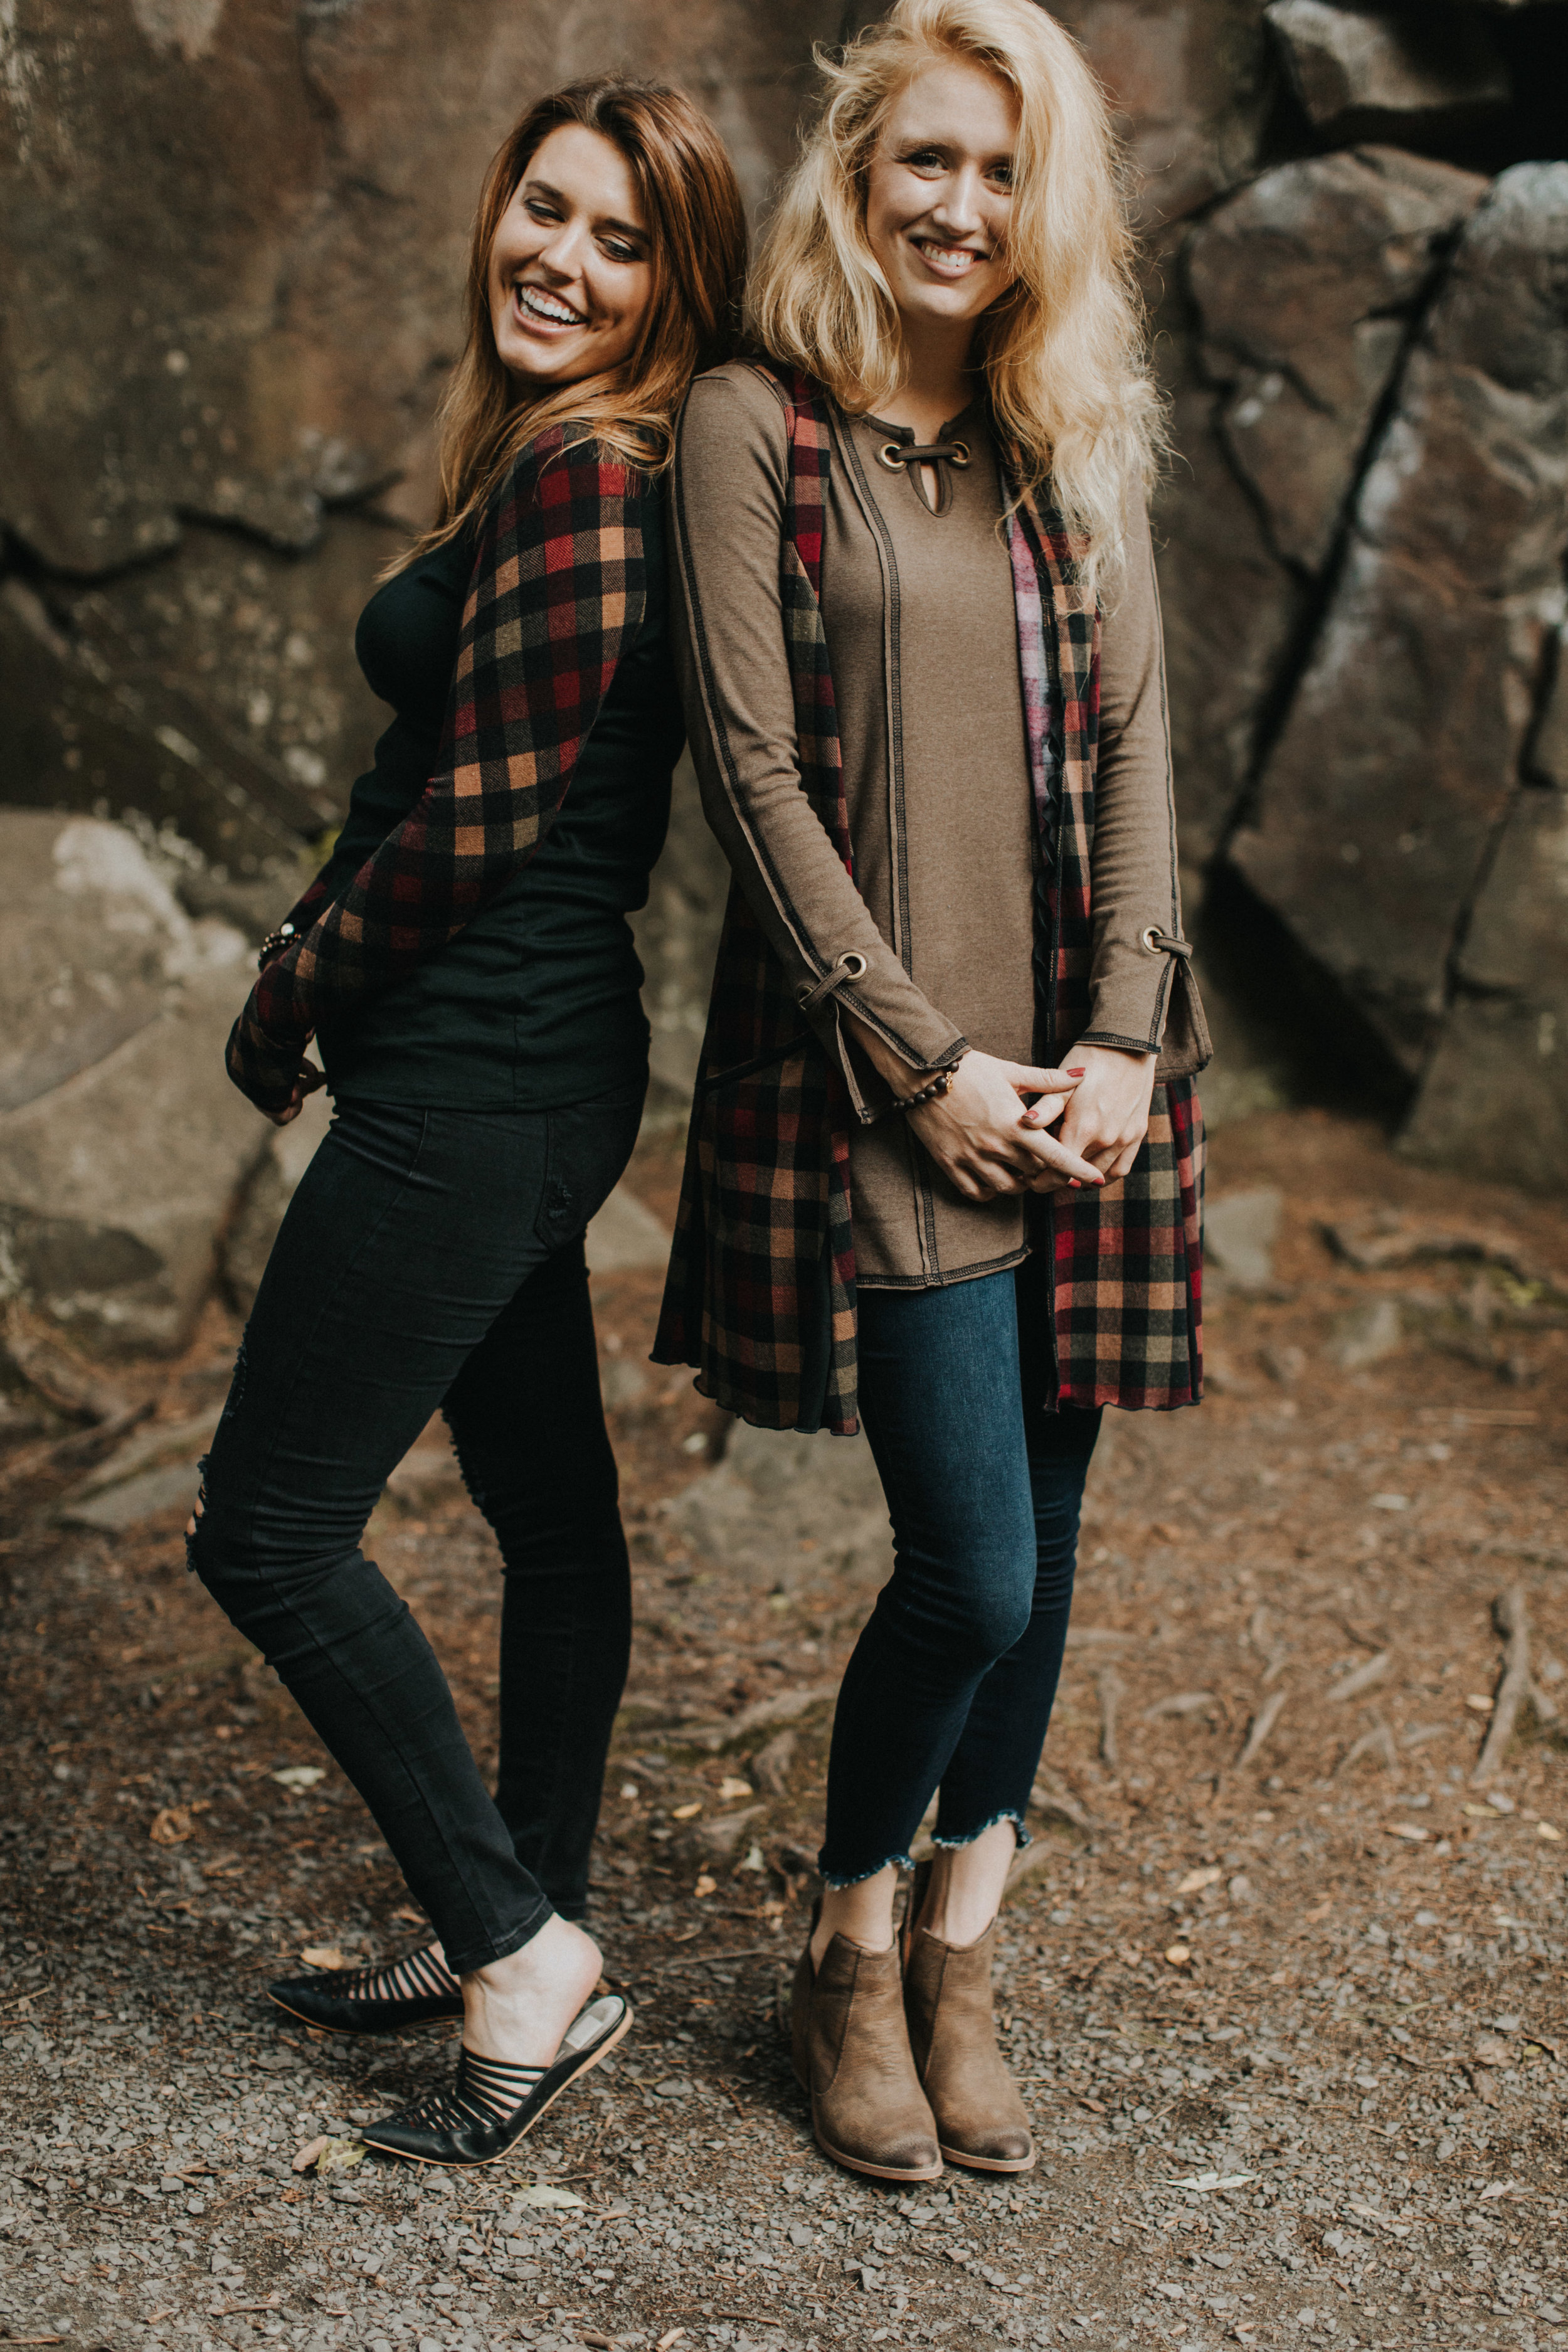 MainstreamBoutique_2018Taylors_Falls_Russell_Heeter_Photography-361.jpg